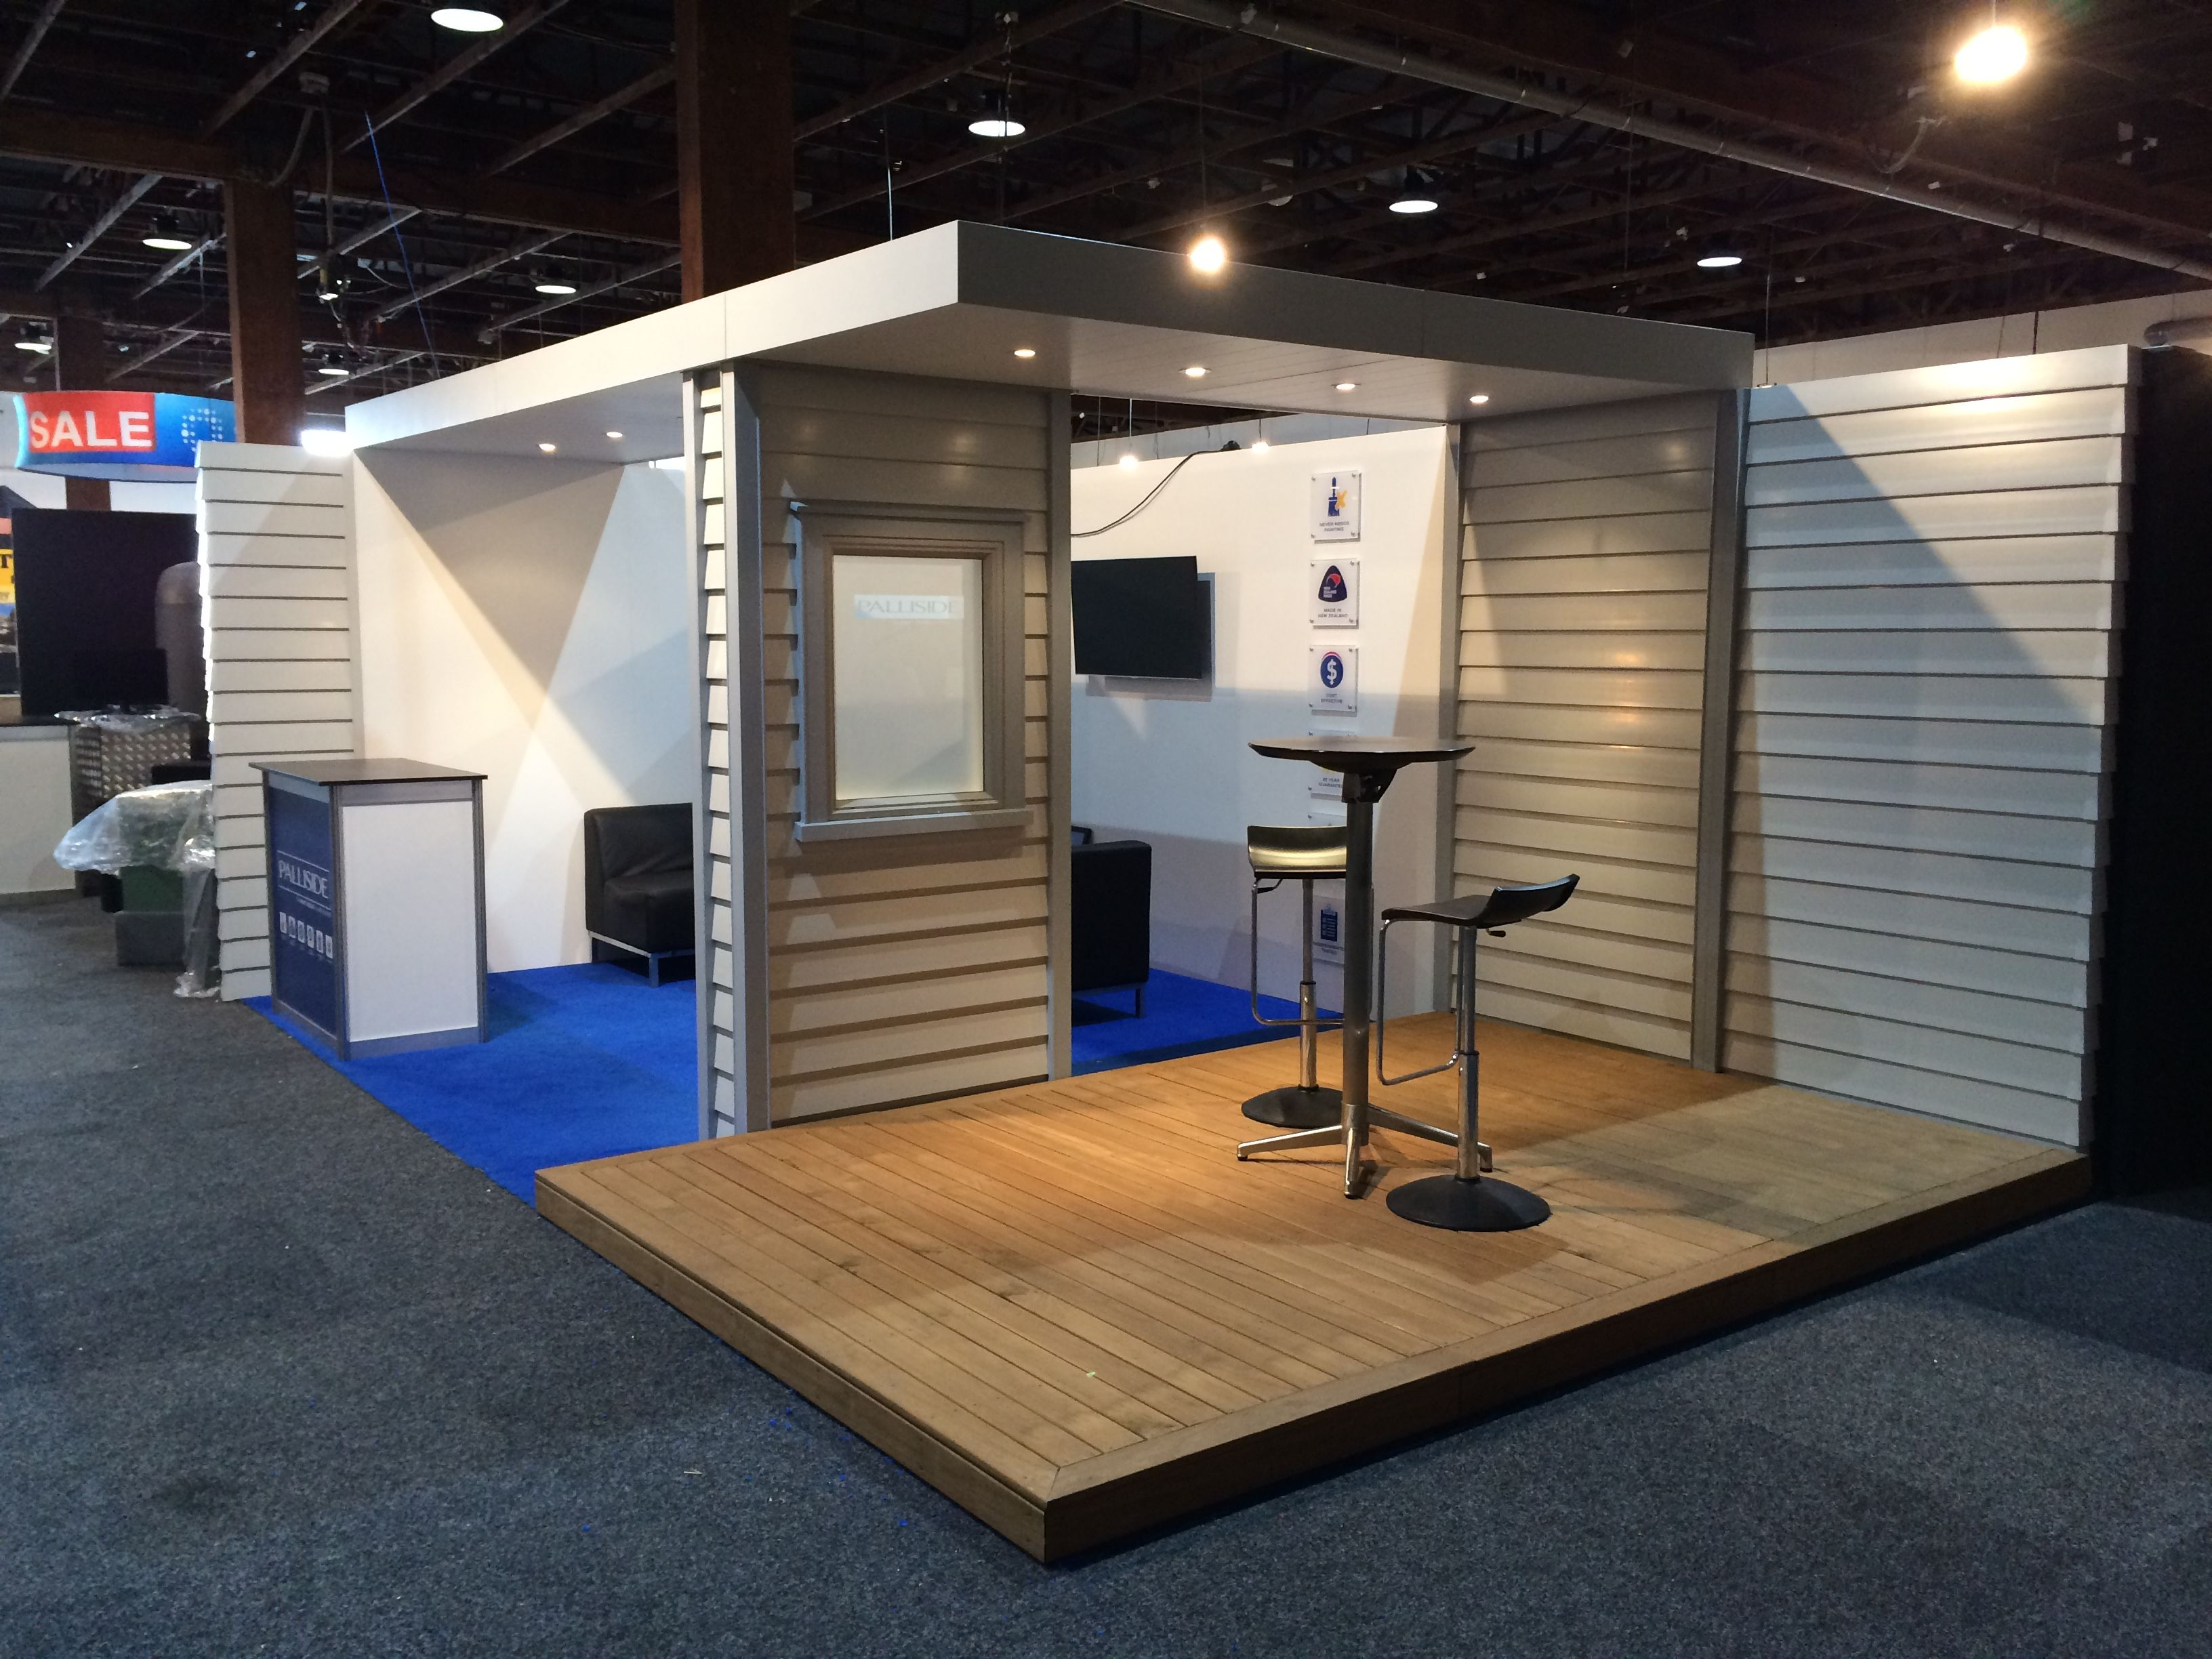 Exhibition Stand Lighting Nz : Dynex extrusions palliside stand at the auckland homeshow